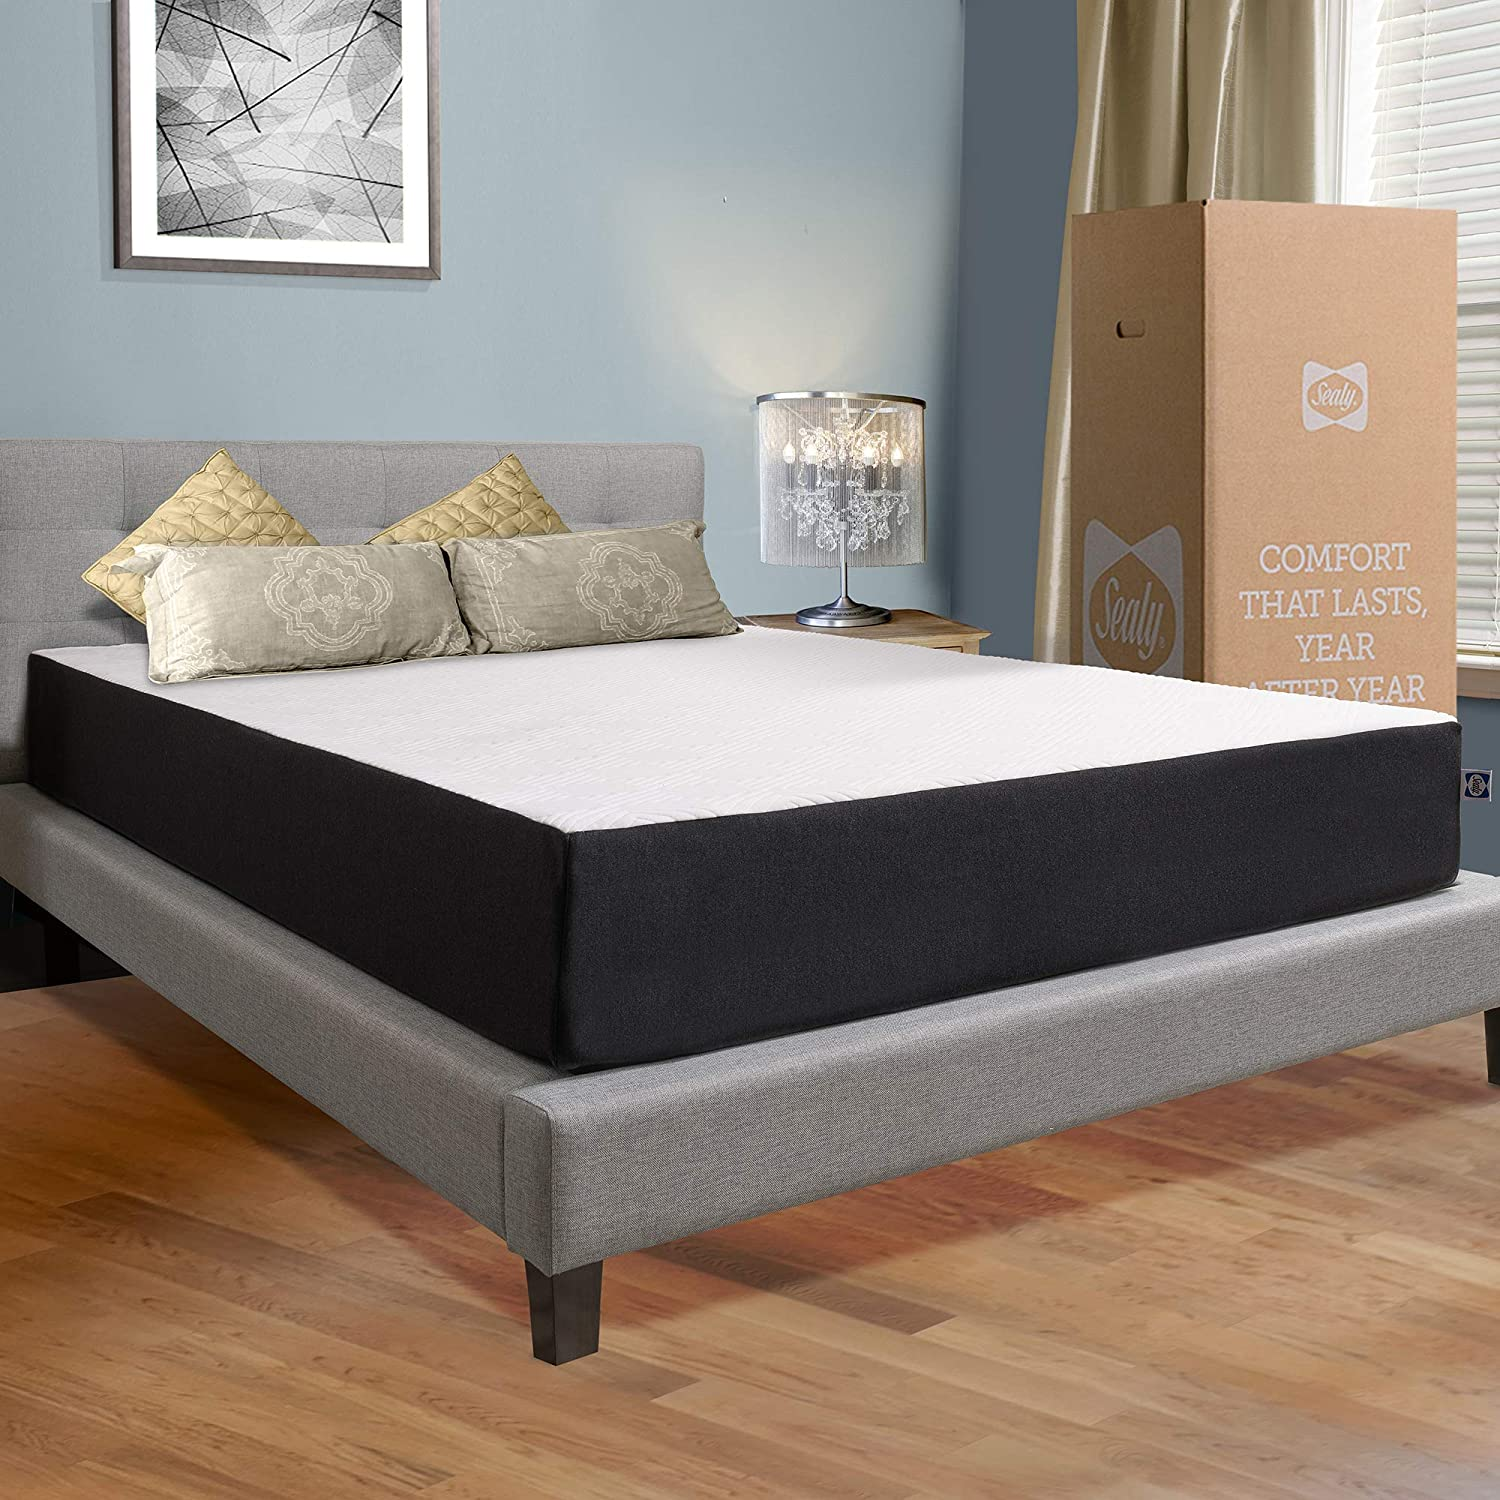 Sealy 10-Inch Hybrid Bed in a Box, Medium-Firm, Queen